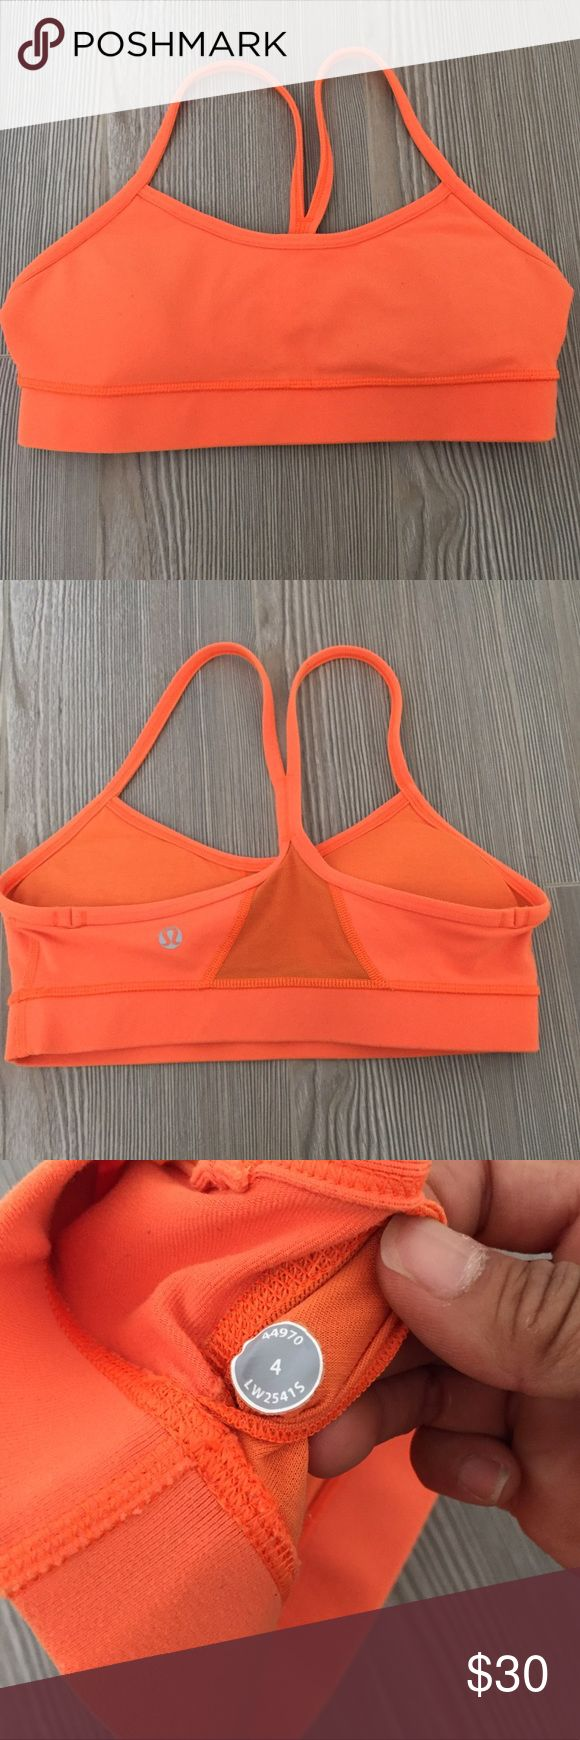 Lululemon Flow Y Sports Bra bright orange size 4 Size 4, worn and washed a few times. In great condition! Has the removable cup inserts. Let me know if you have any questions! lululemon athletica Intimates & Sleepwear Bras